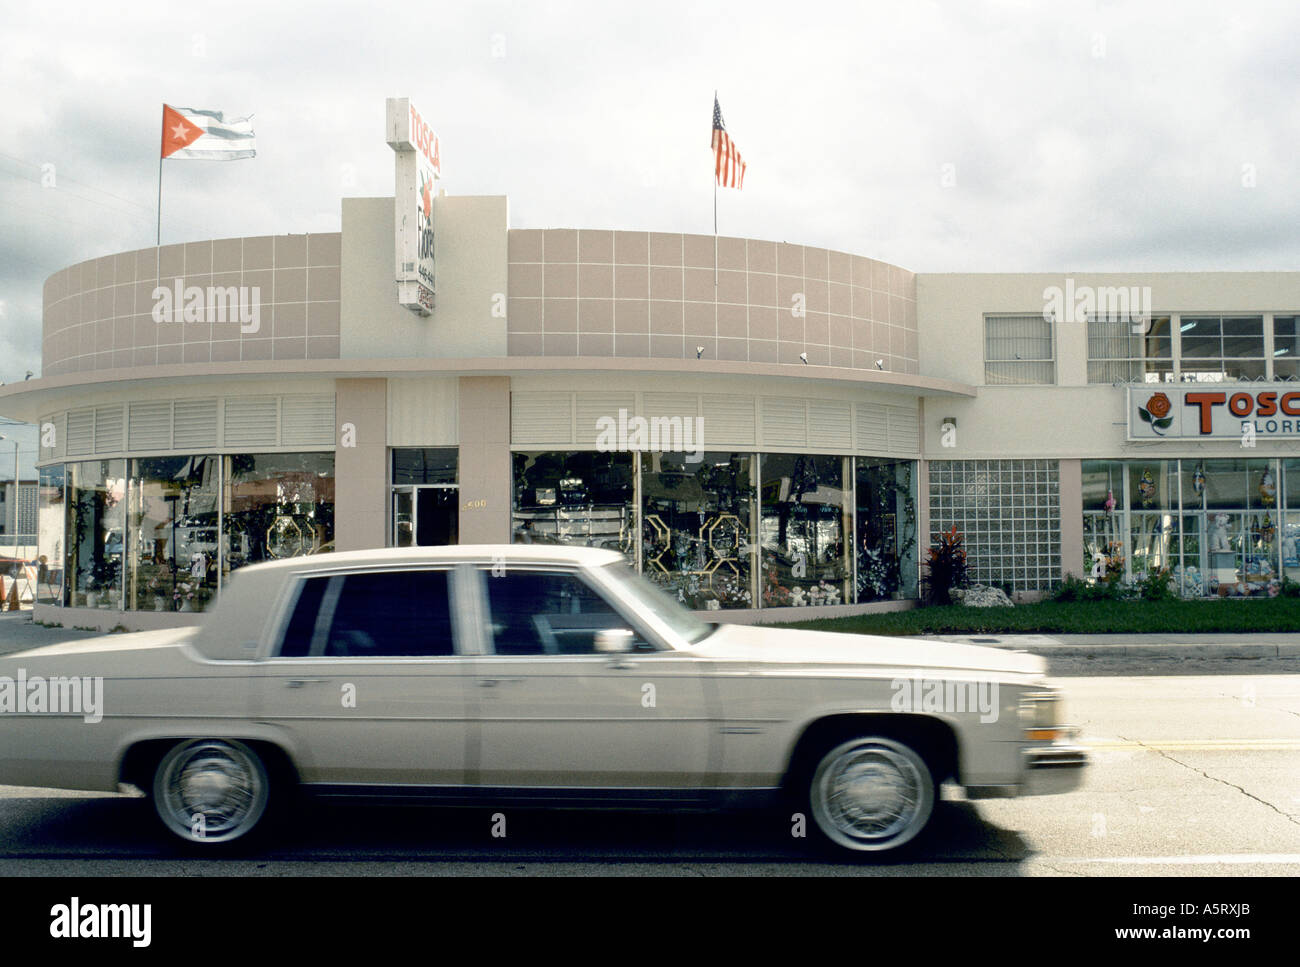 CUBAN EXILE COMMUNITY MIAMI STREET SCENE OF MIAMI S LITTLE HAVANA A WHITE CAR DEING DROVE PASS A FLOWER SHOP Stock Photo